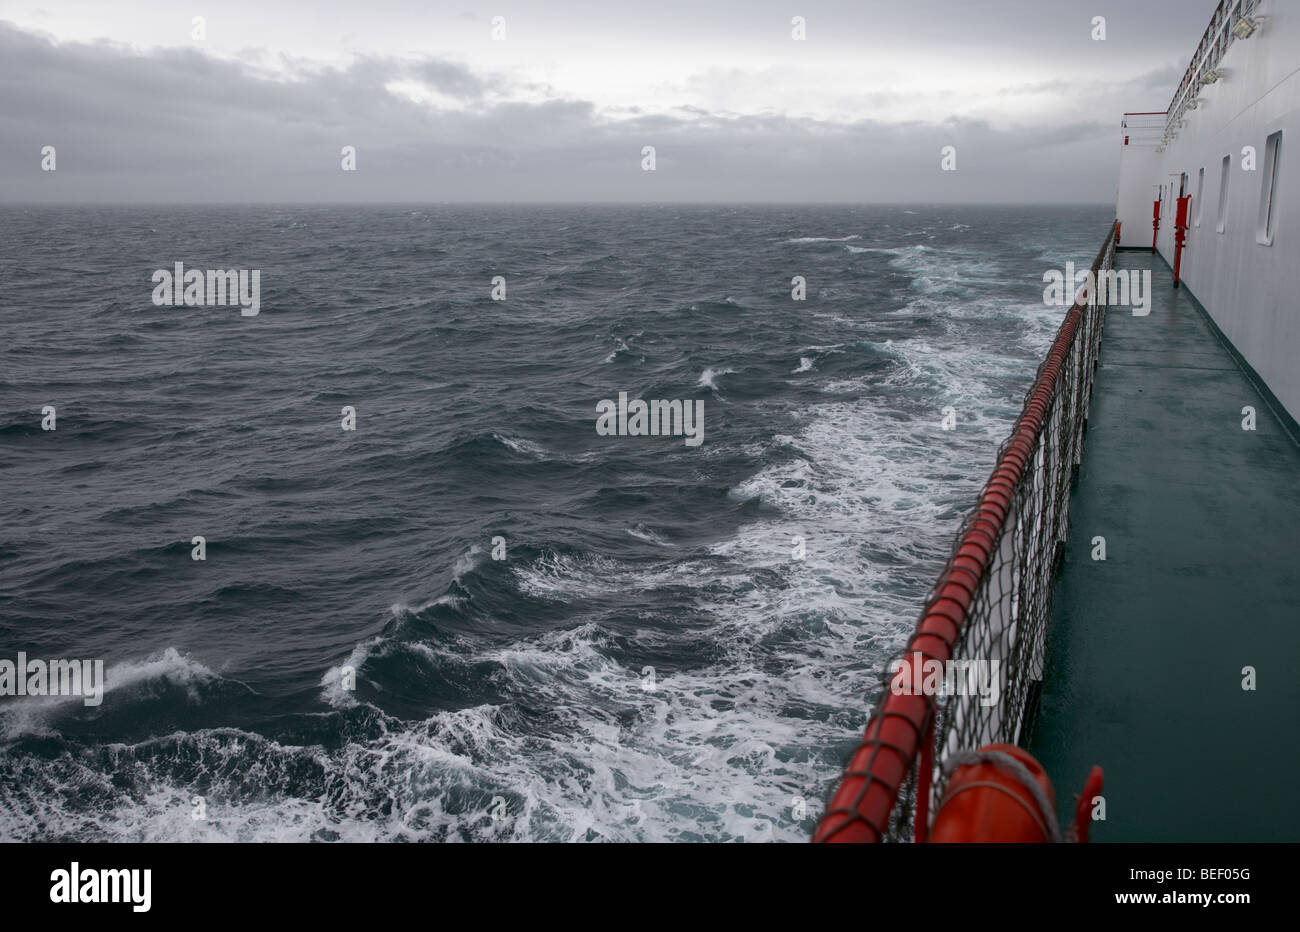 On board the mersey viking belfast liverpool ferry on a dull grey day with rough seas - Stock Image